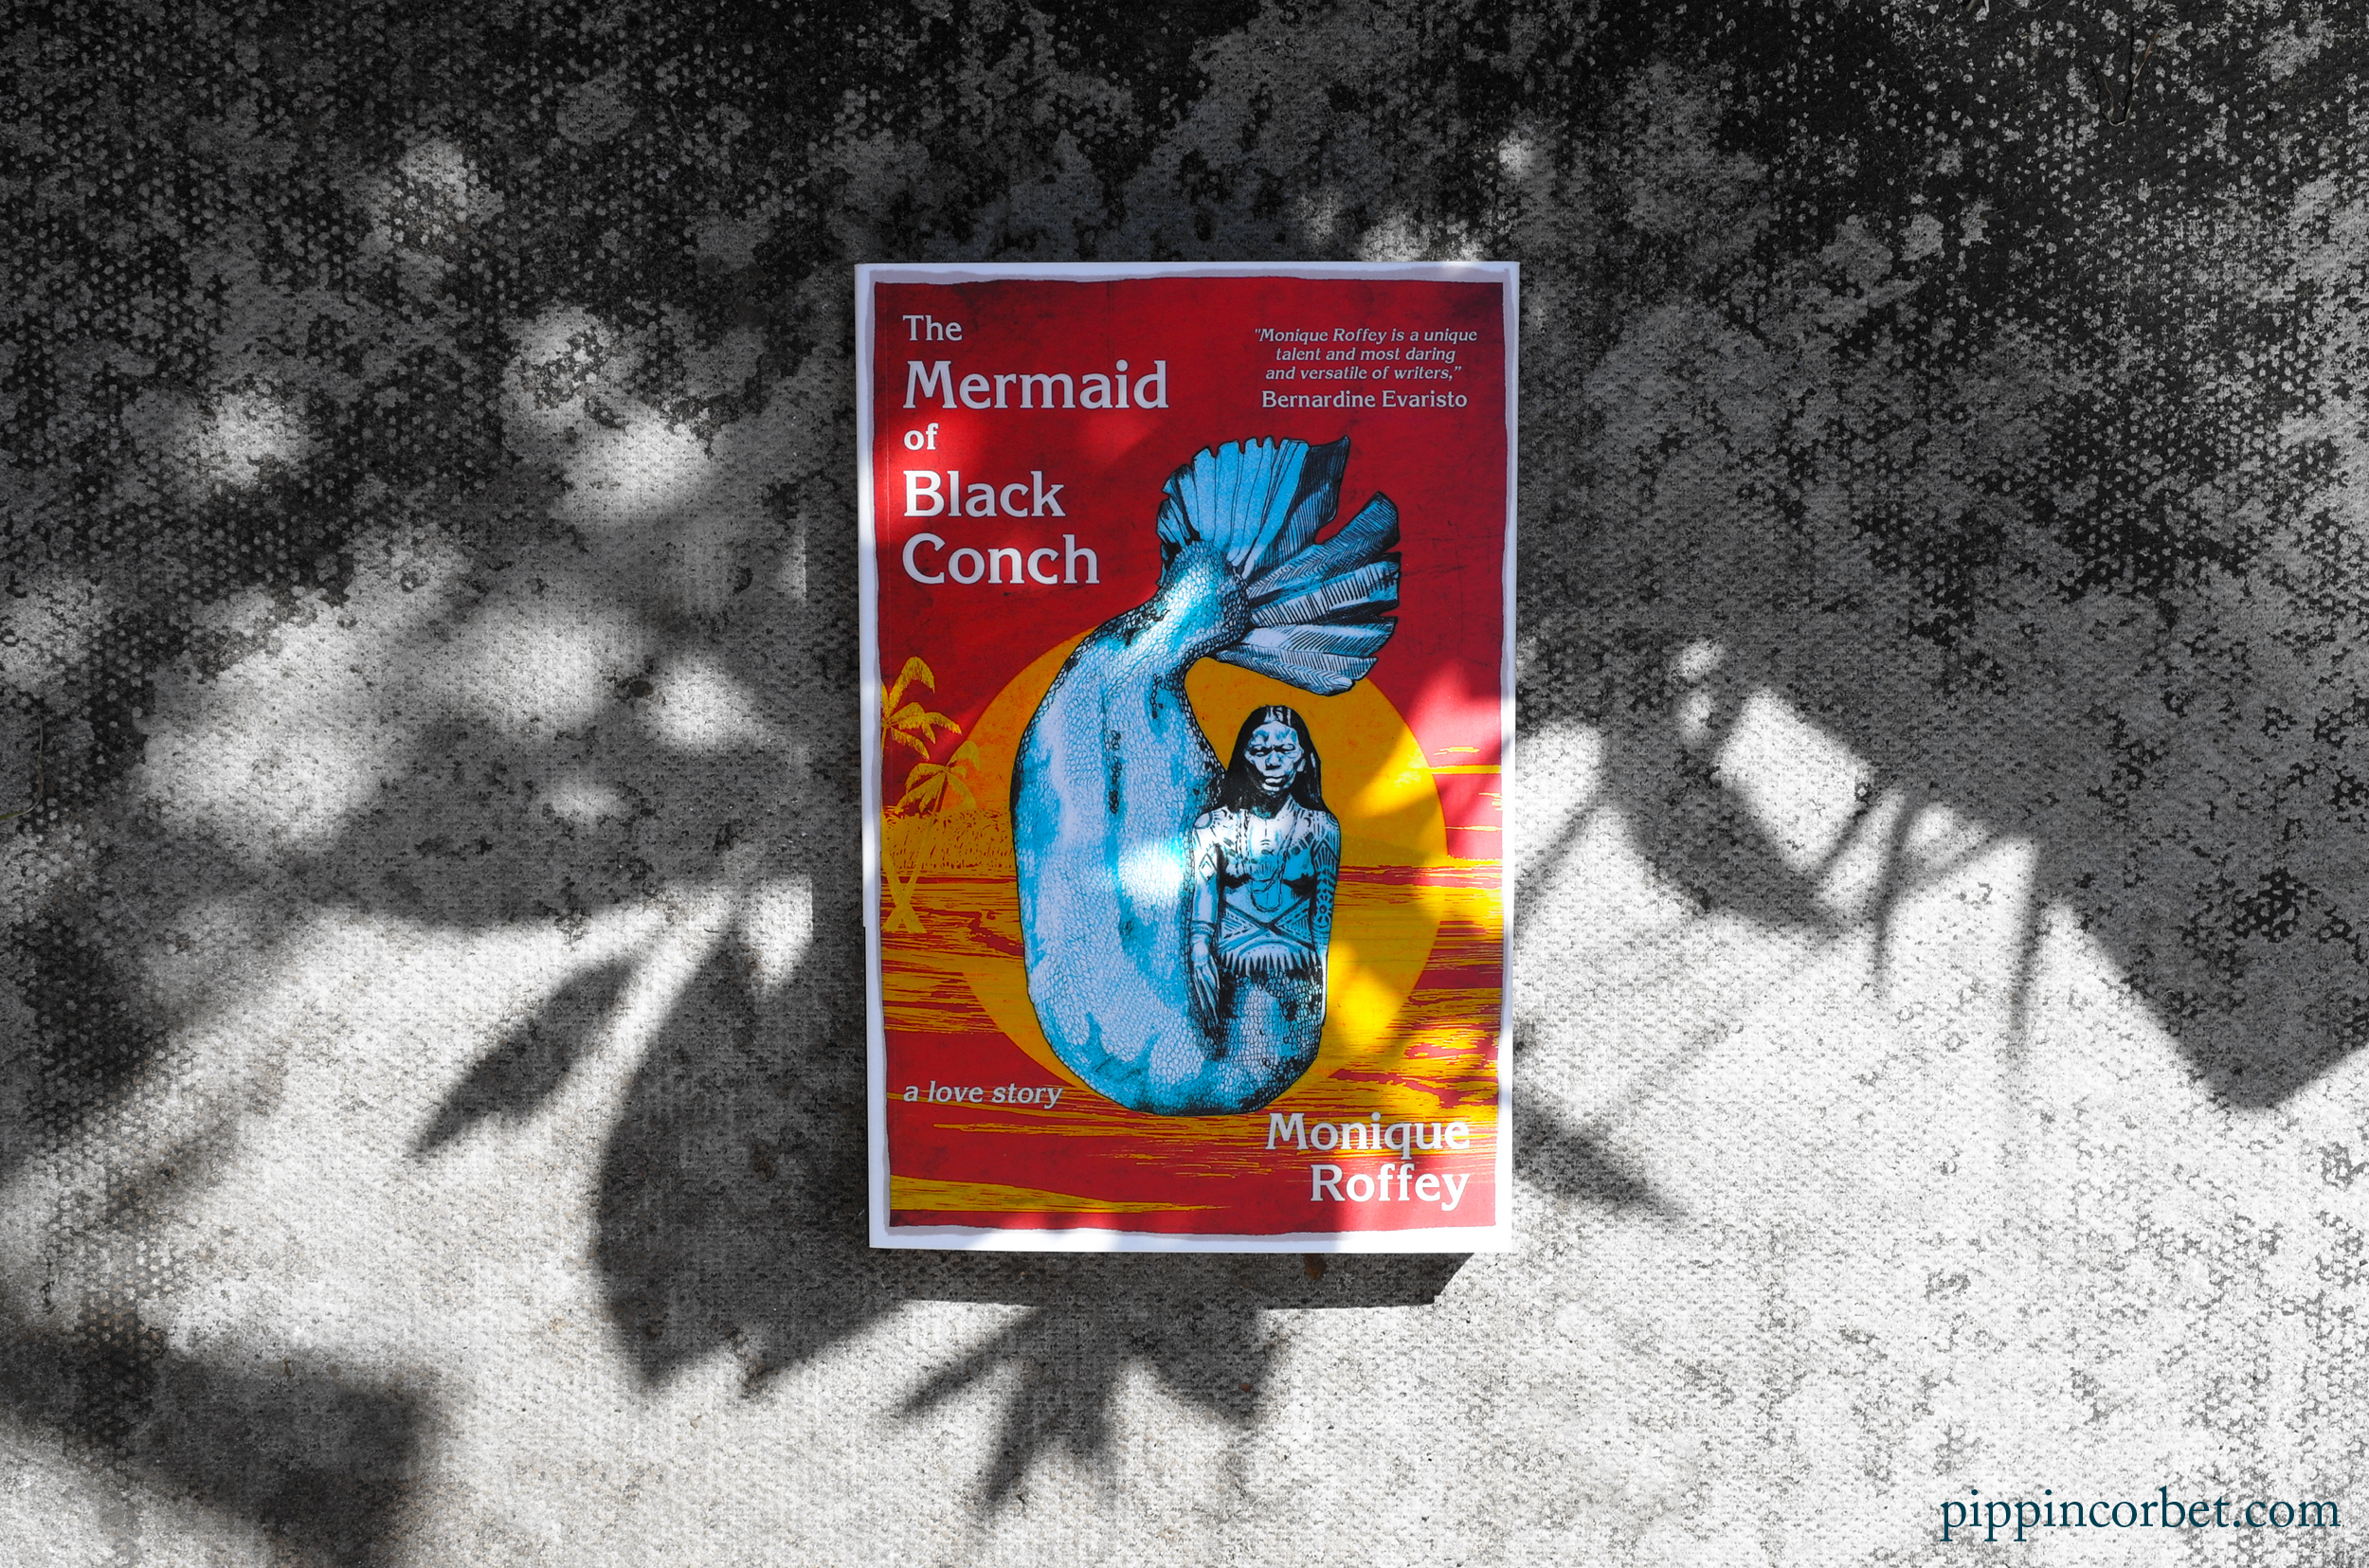 The Mermaid of Black Conch by Monique Roffey.